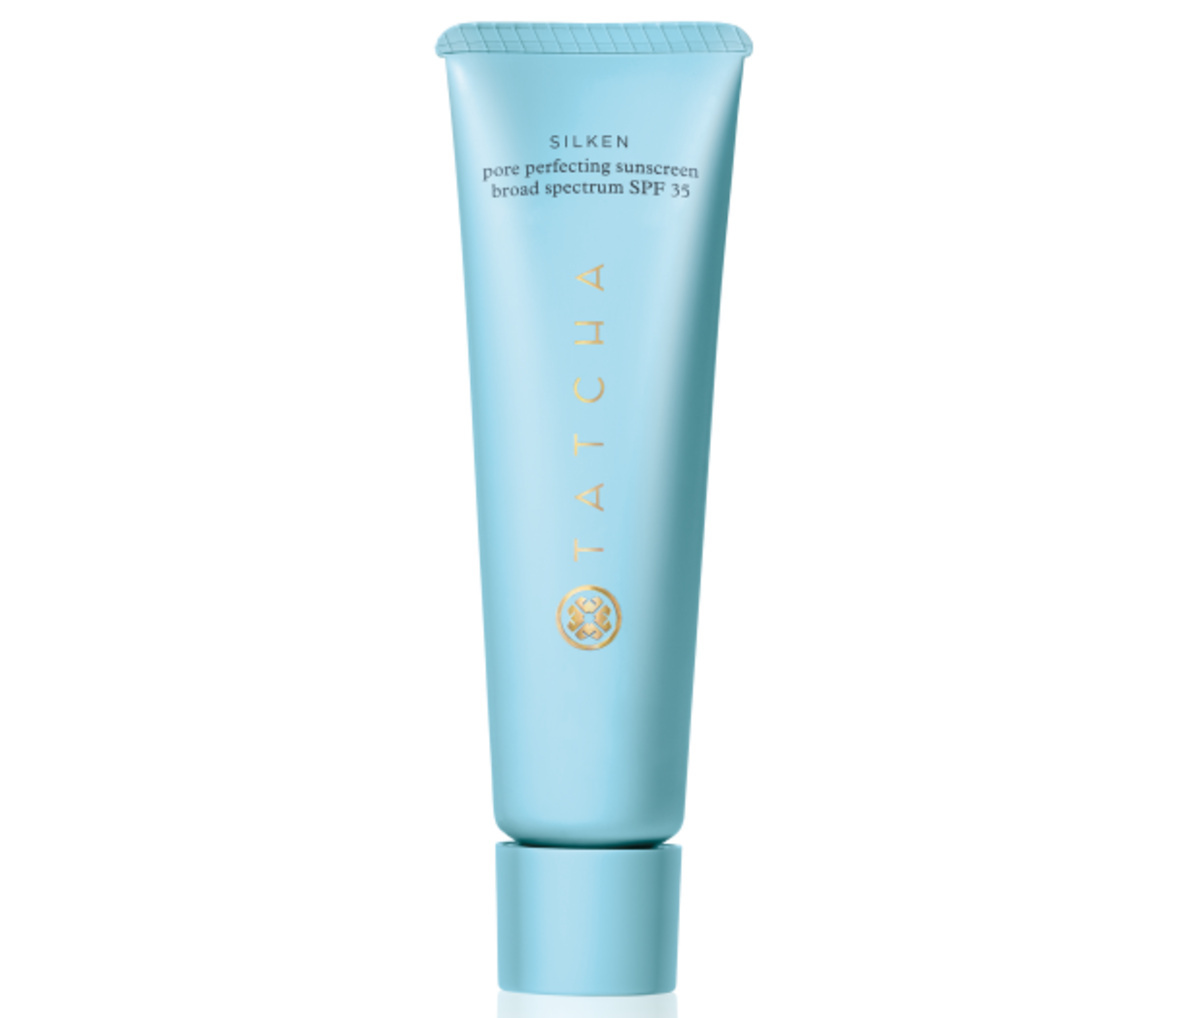 Tatcha Silken Pore Perfecting Sunscreen Broad Spectrum SPF 35, $65, available at Sephora